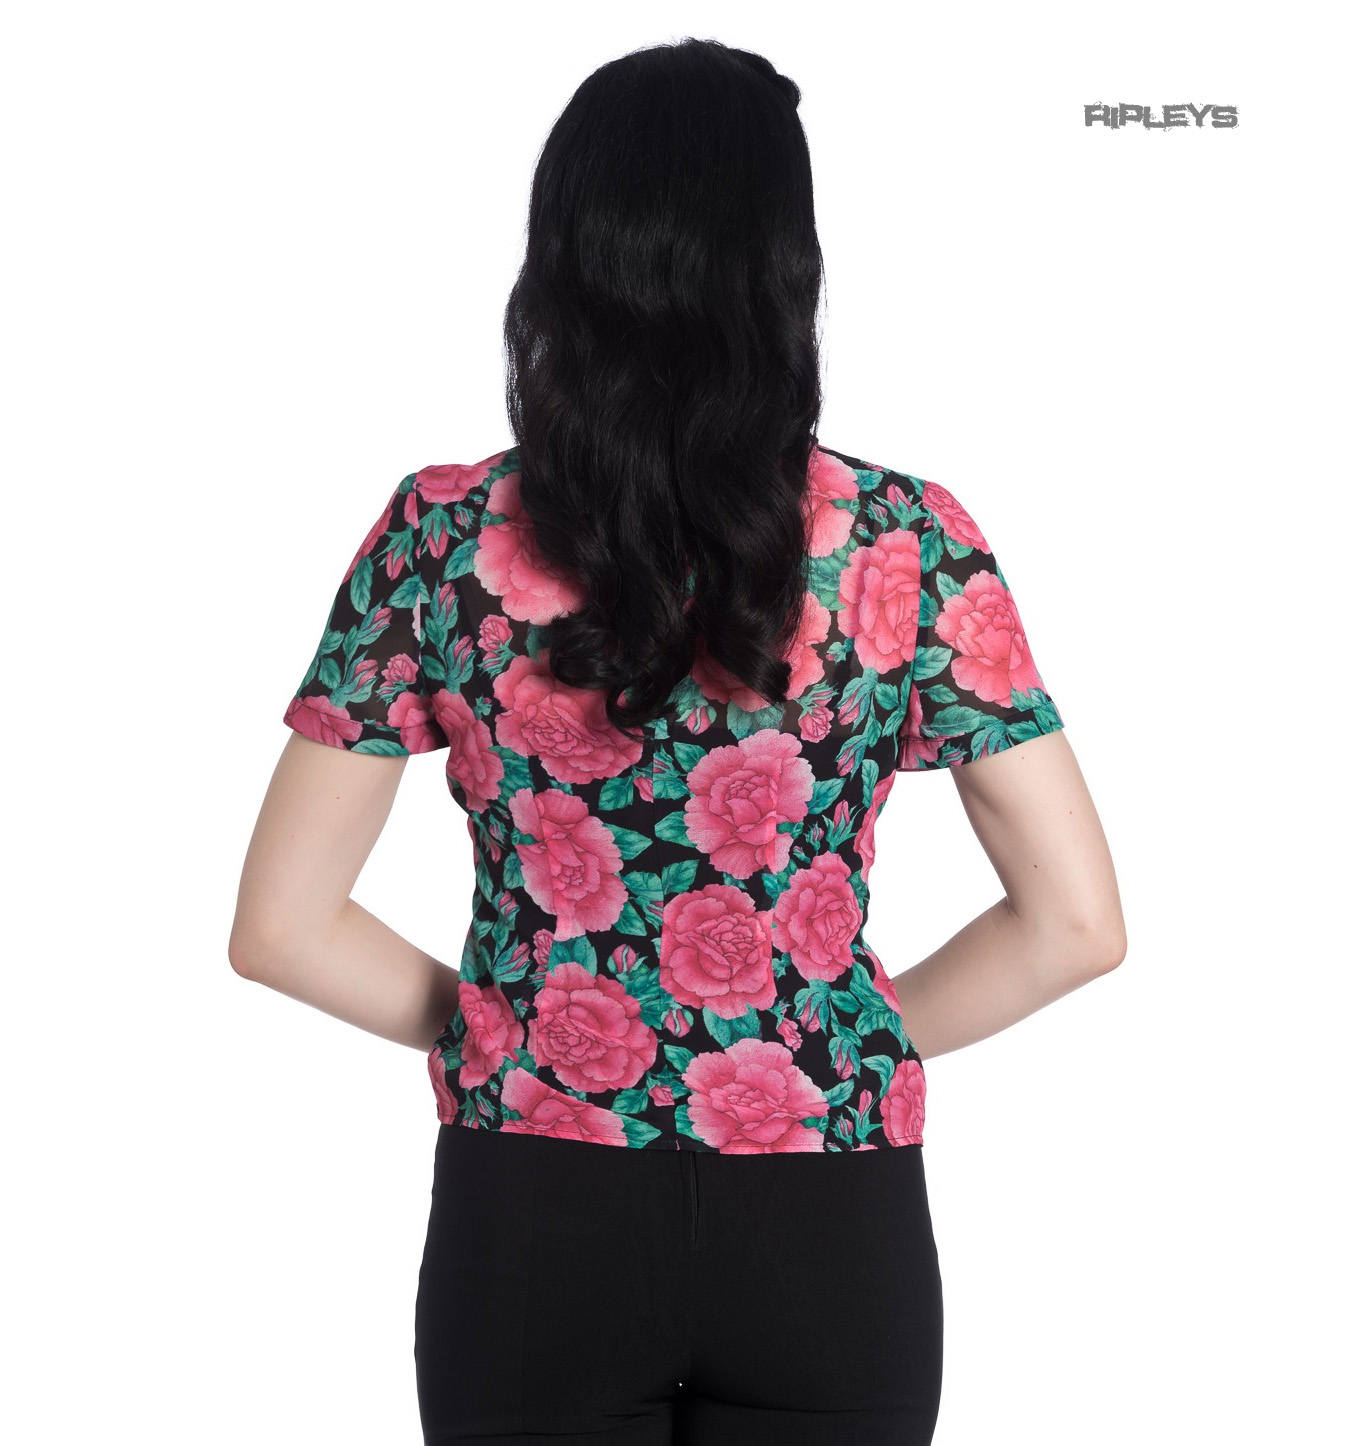 Hell-Bunny-Shirt-Top-Flowers-Roses-EDEN-ROSE-Black-Pink-Blouse-All-Sizes thumbnail 12